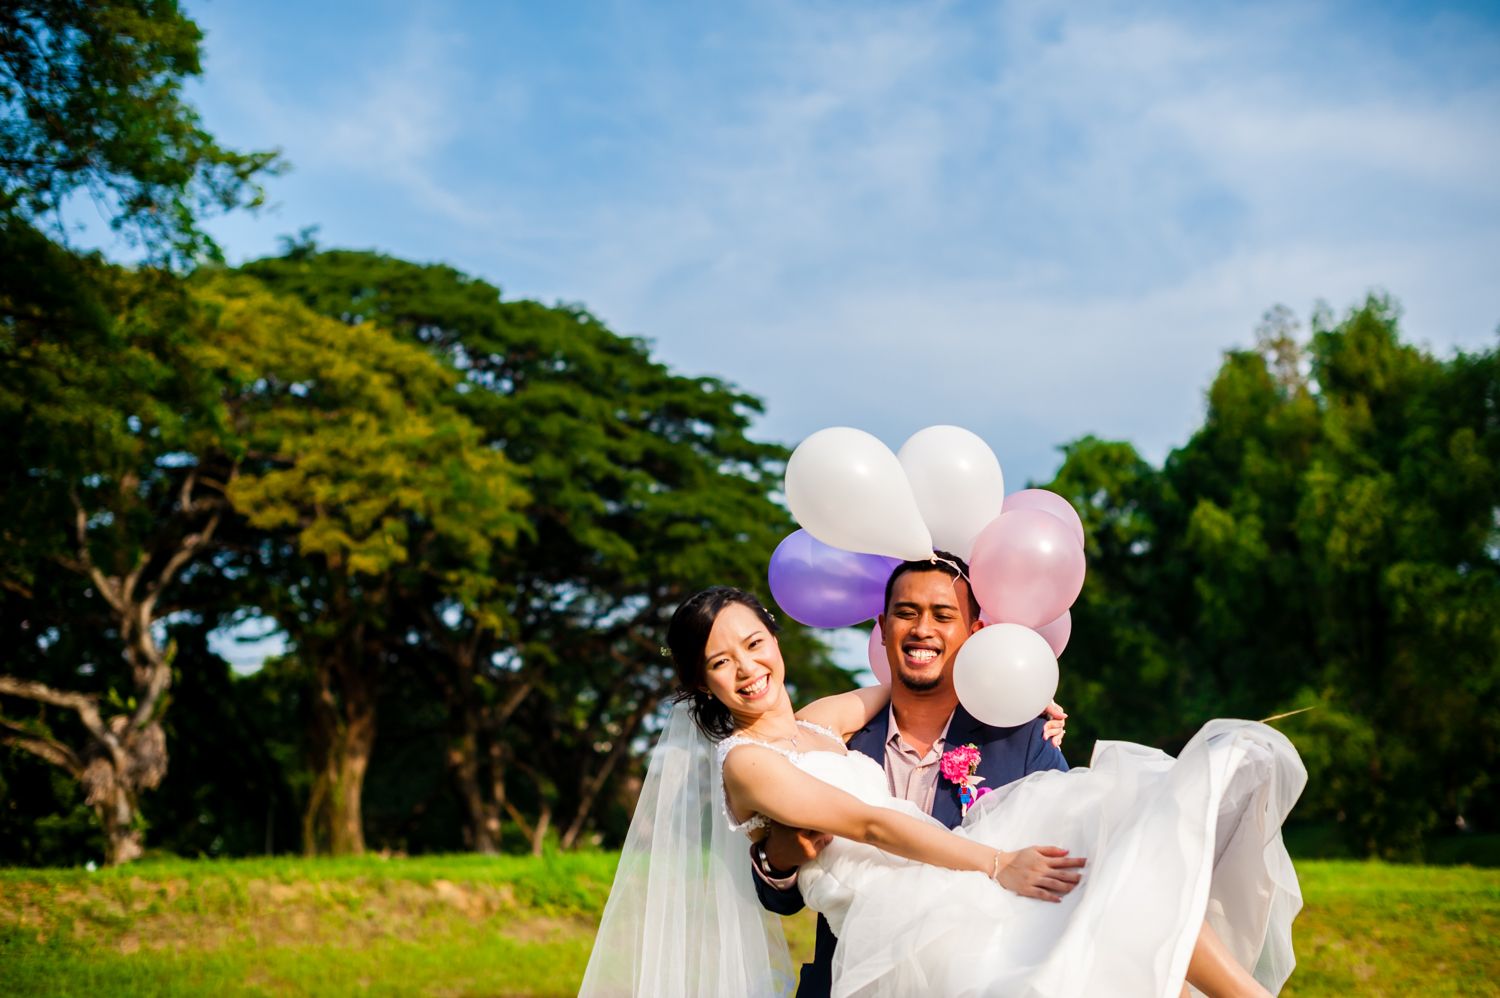 wedding-photoshoot-commonwealth-nature-singapore (2 of 7).jpg